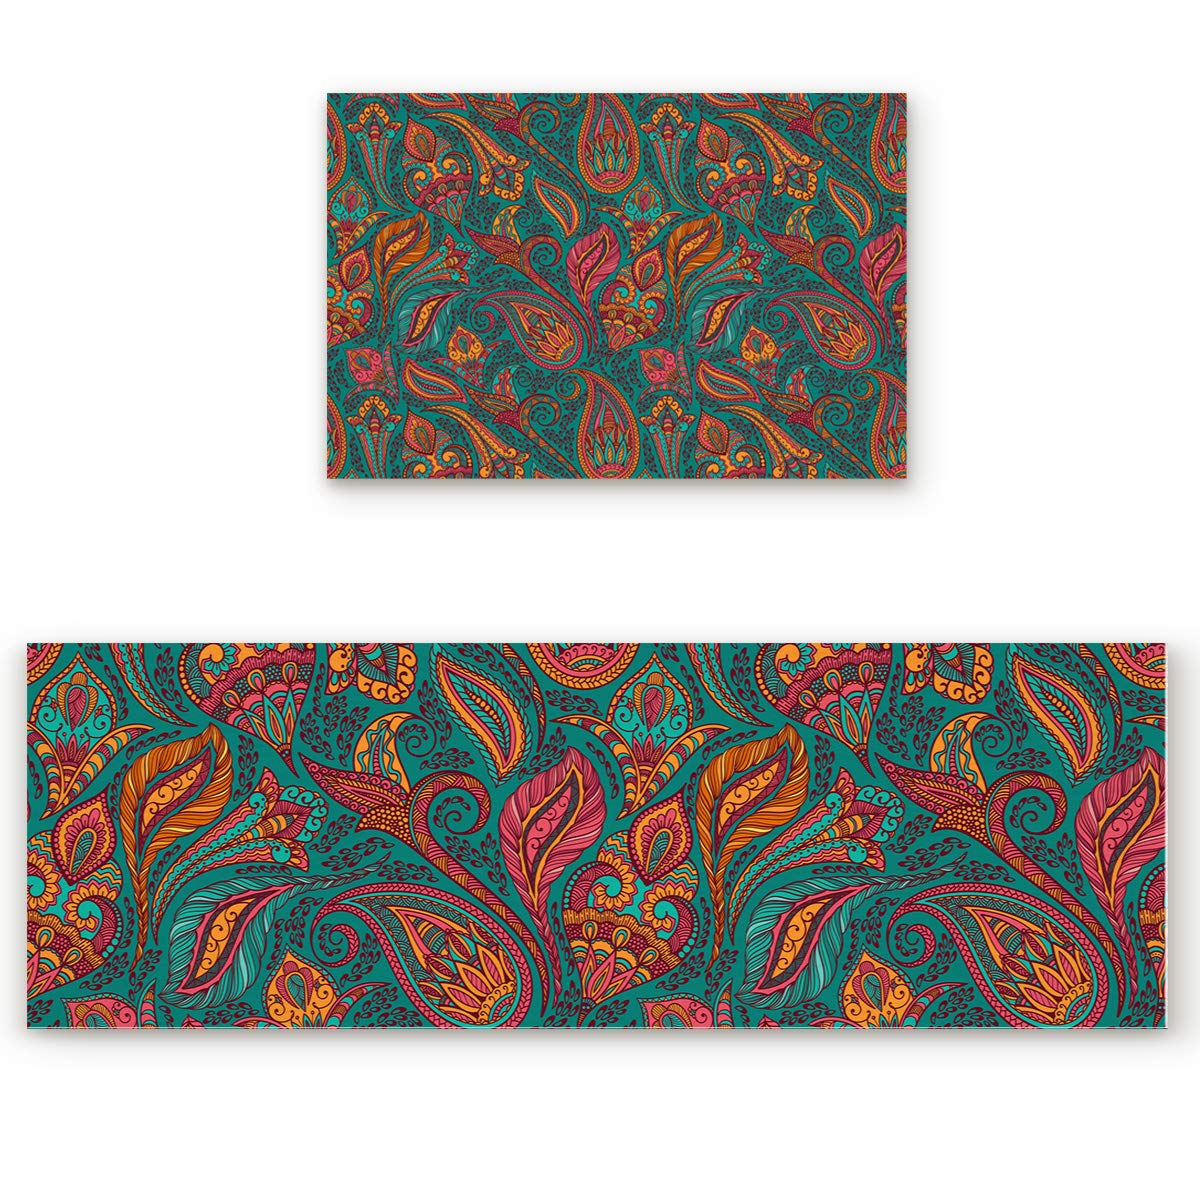 Paisley 12san9253 19.7 x31.5 +19.7 x63  Savannan 2 Piece Non-Slip Kitchen Bathroom Entrance Mat Absorbent Durable Floor Doormat Runner Rug Set - Geometric Pattern